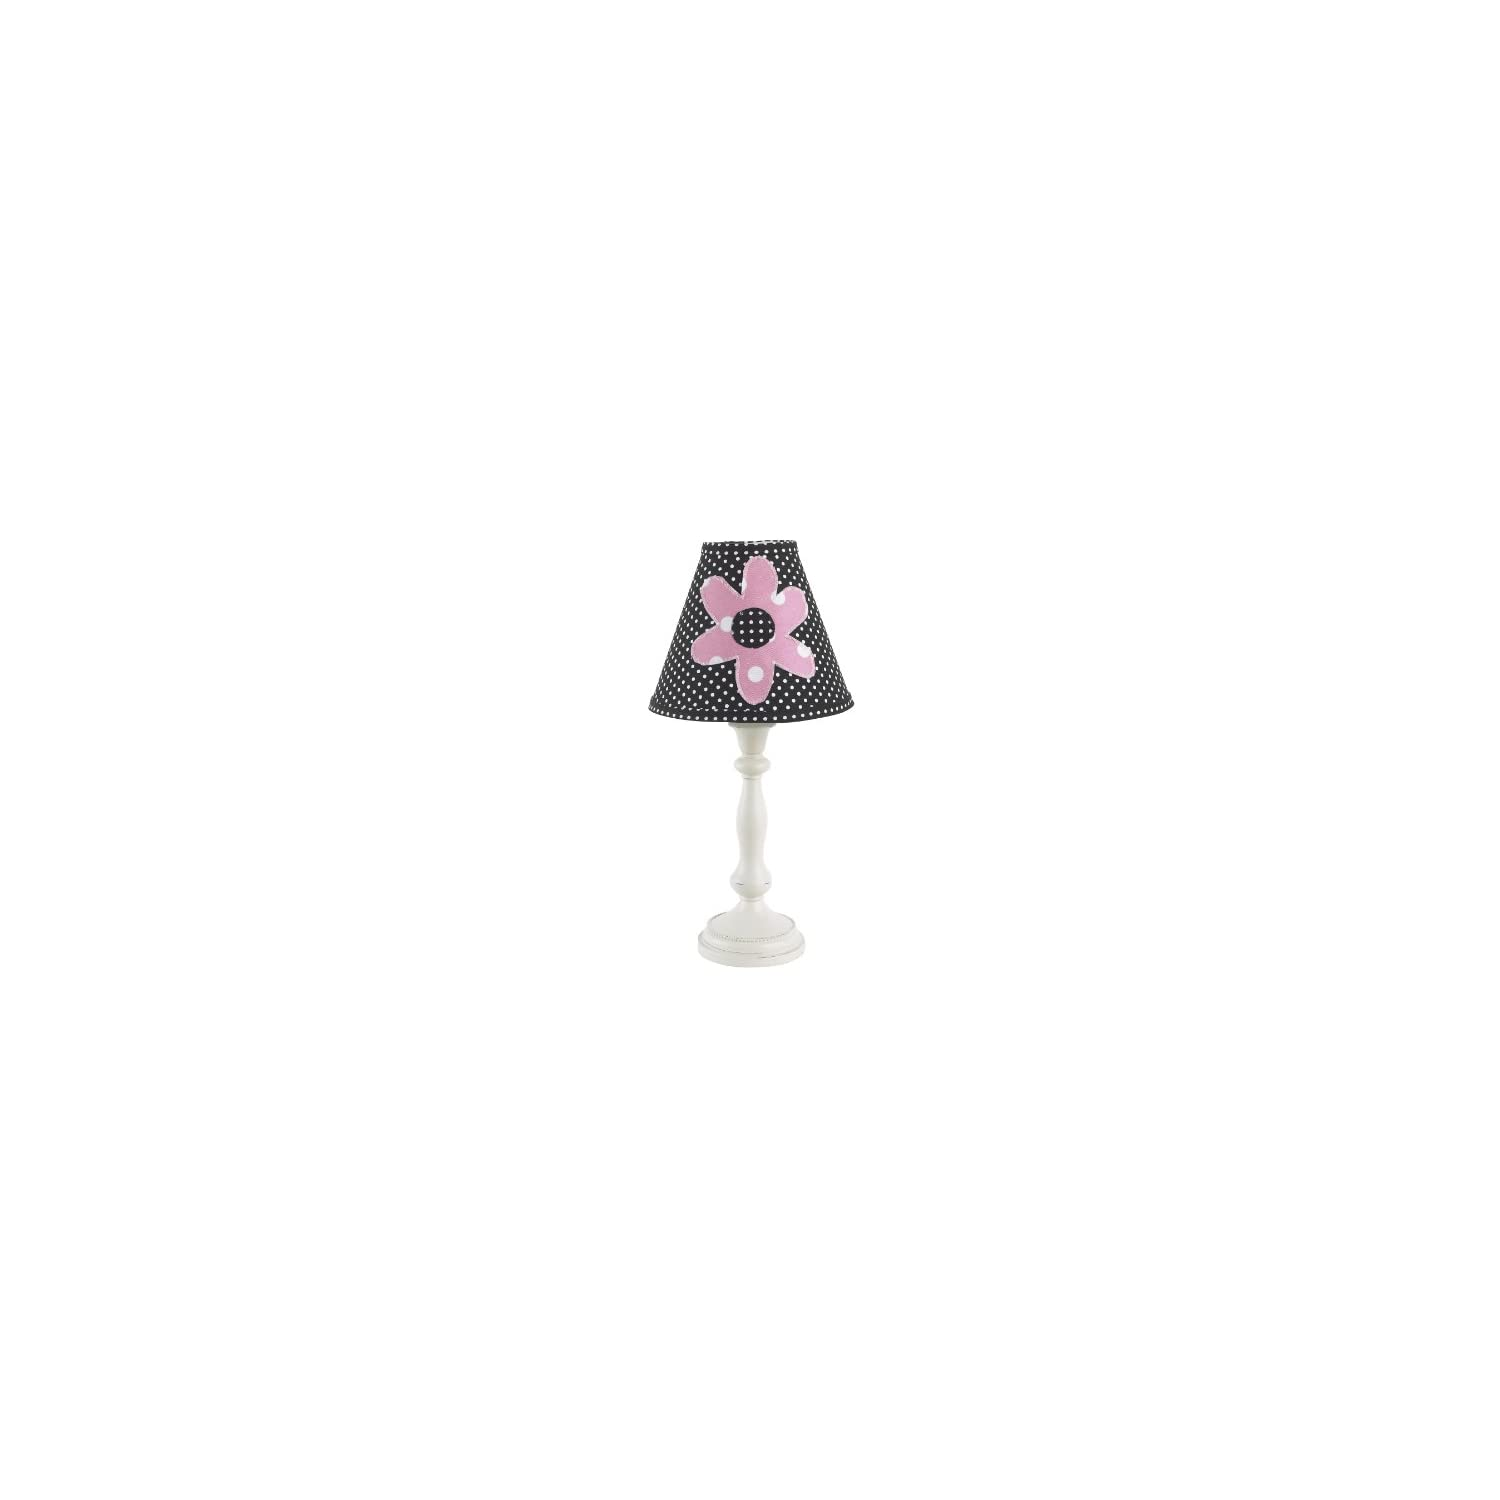 Cotton Tale Designs Girly Standard Lamp and Shade